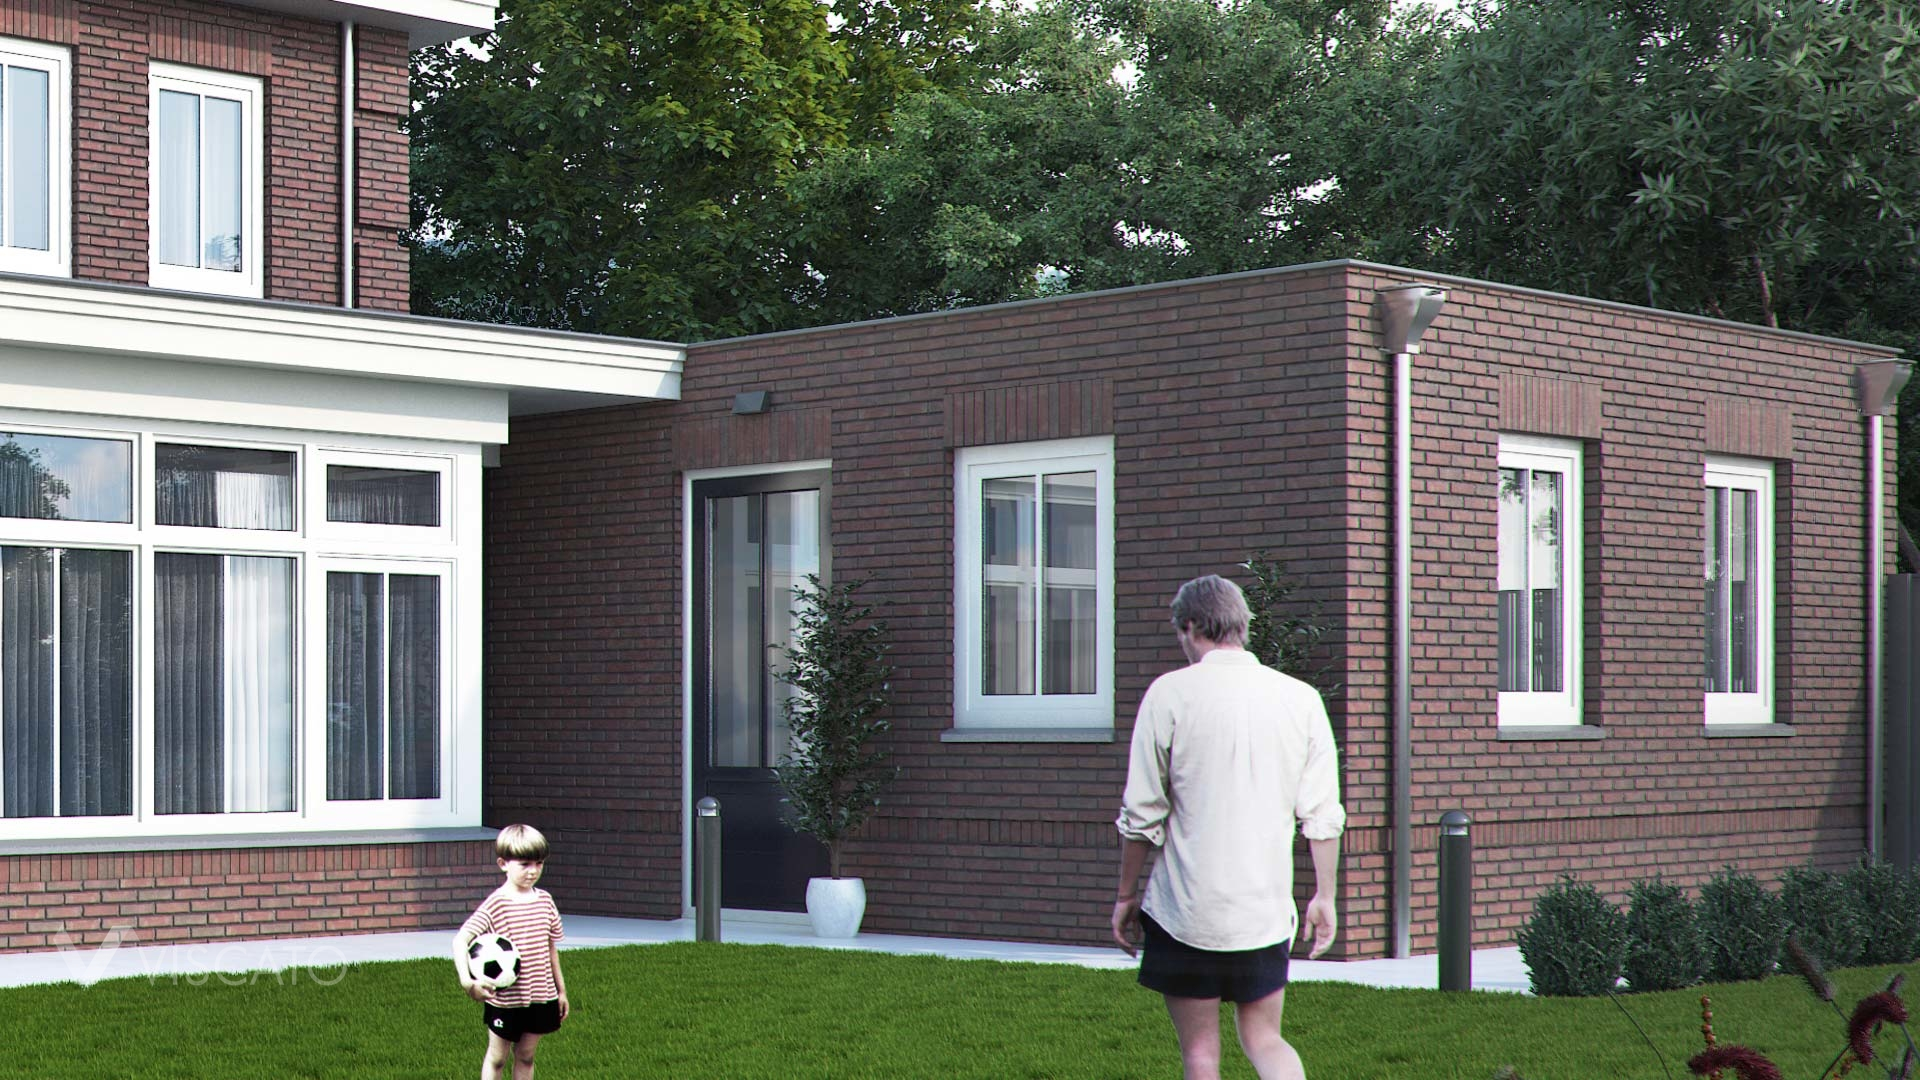 Brick villa house in Holland- garden view with garage